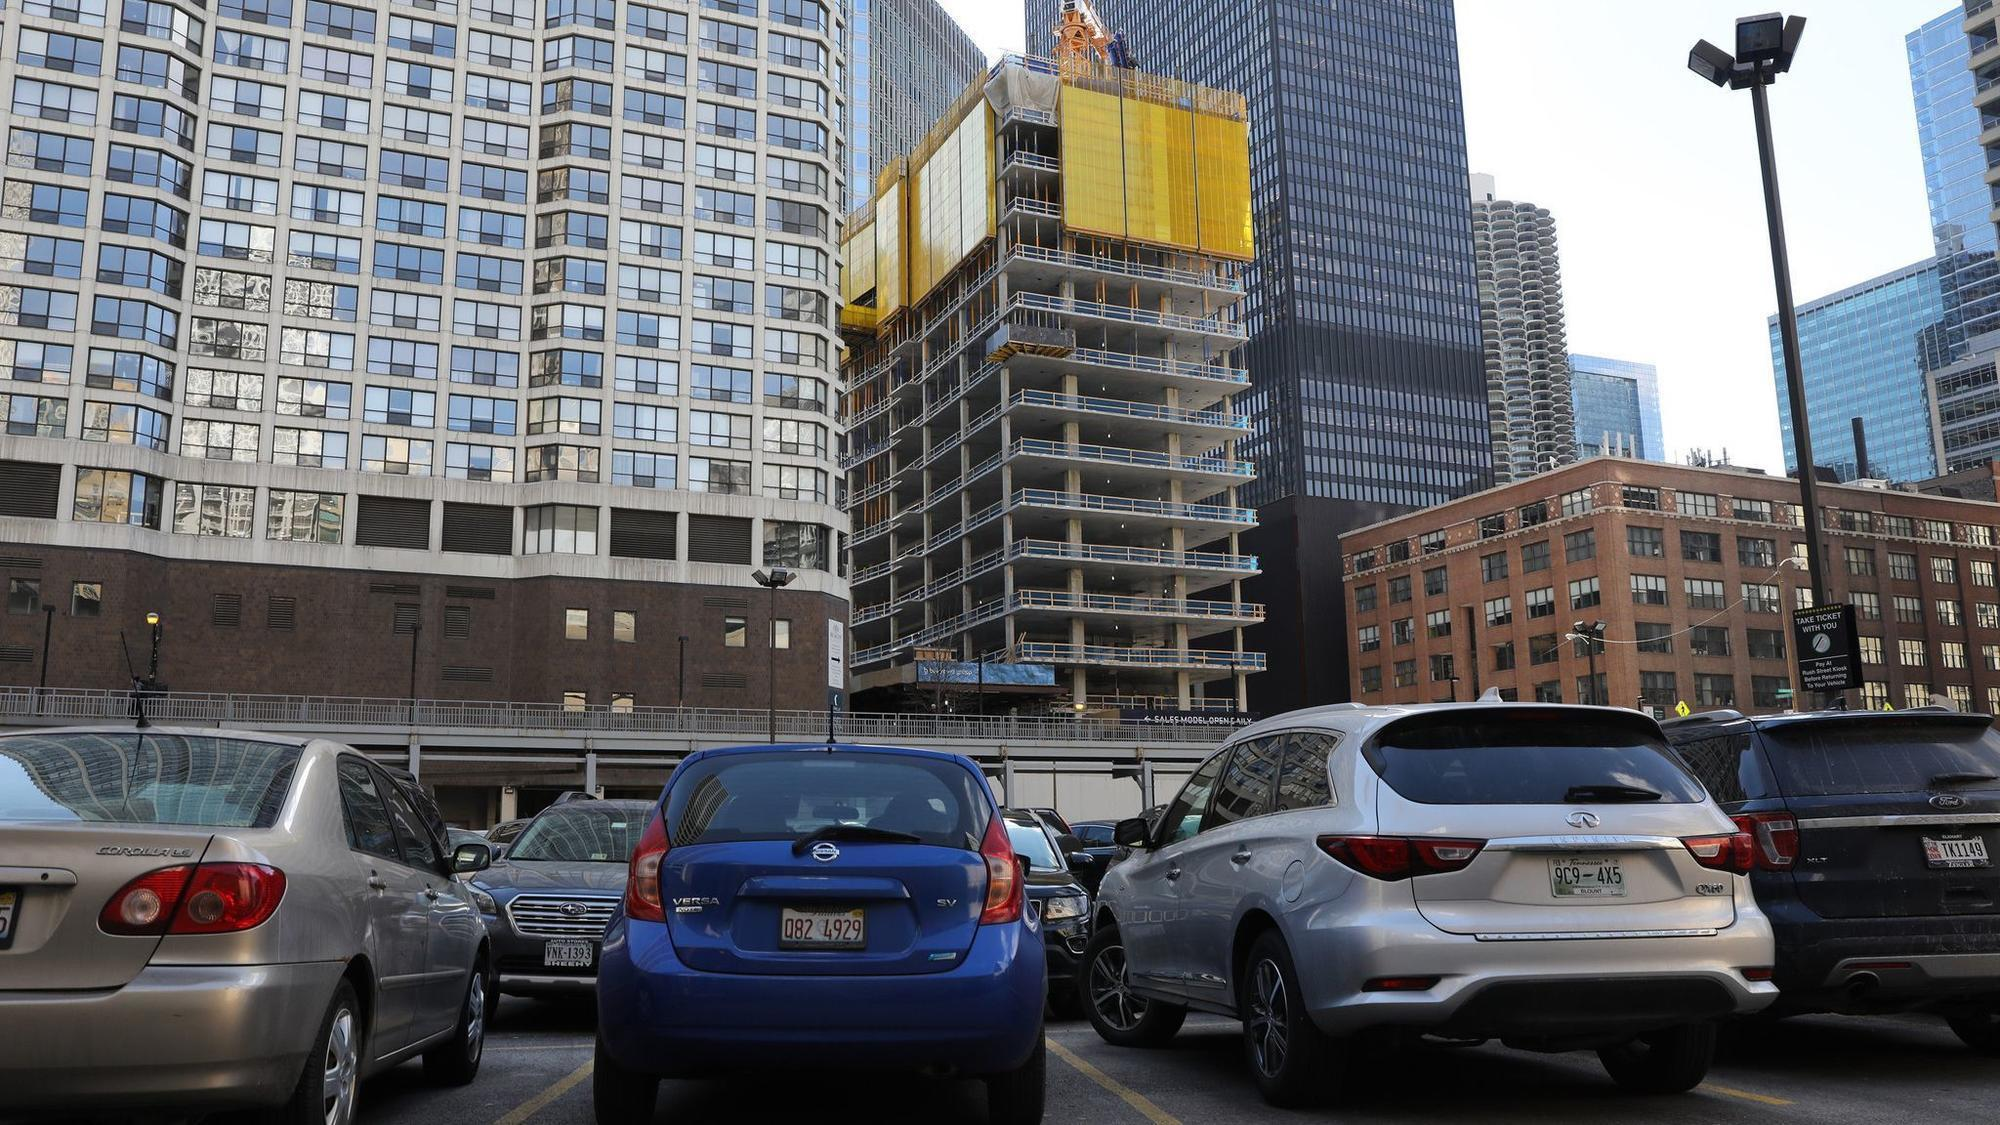 Uber Or Lyft >> Parking lots disappearing in ride-sharing era as downtown ...